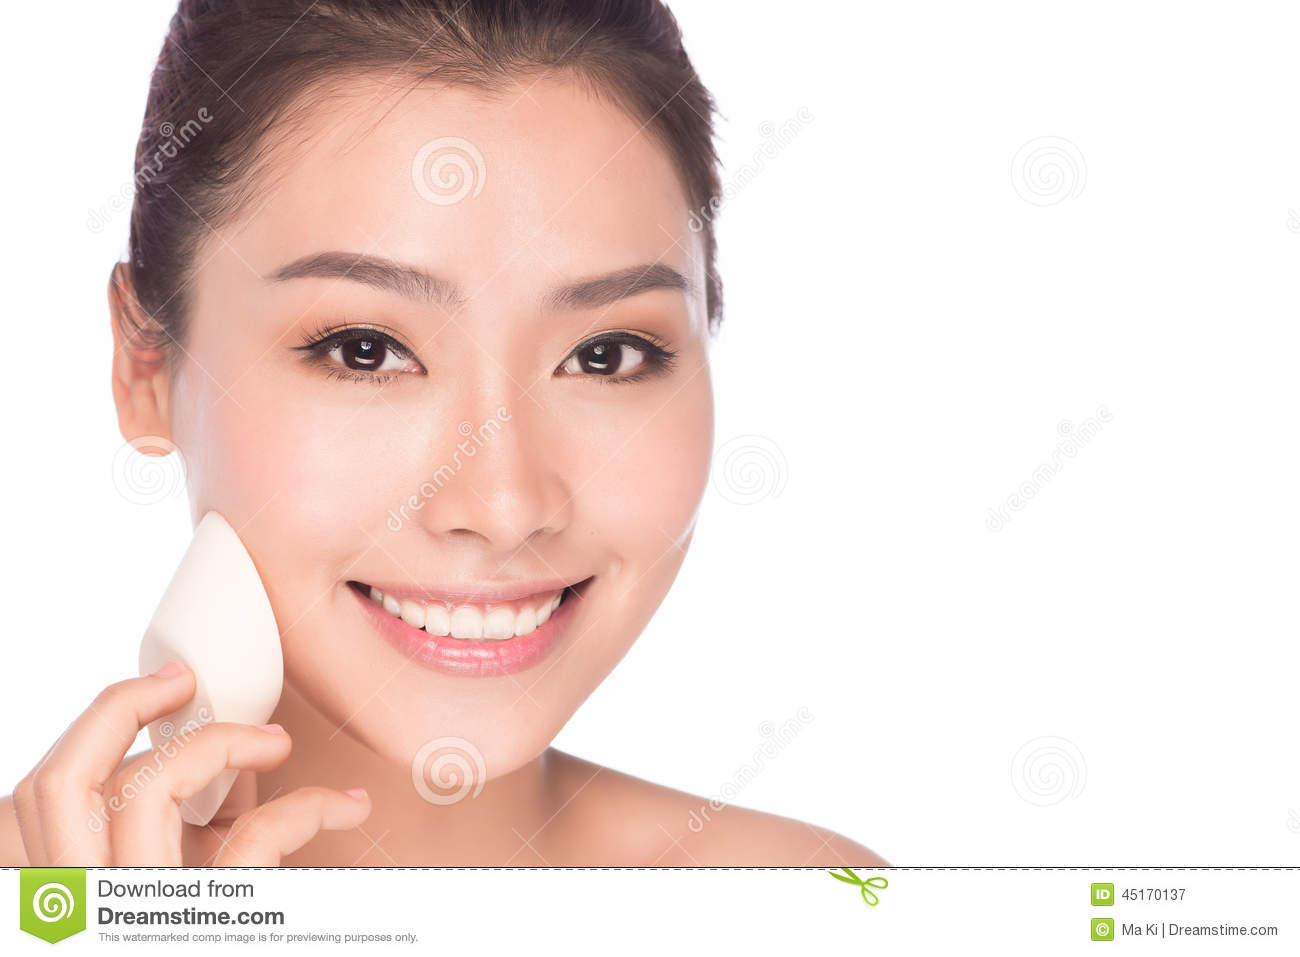 apply asian makeup